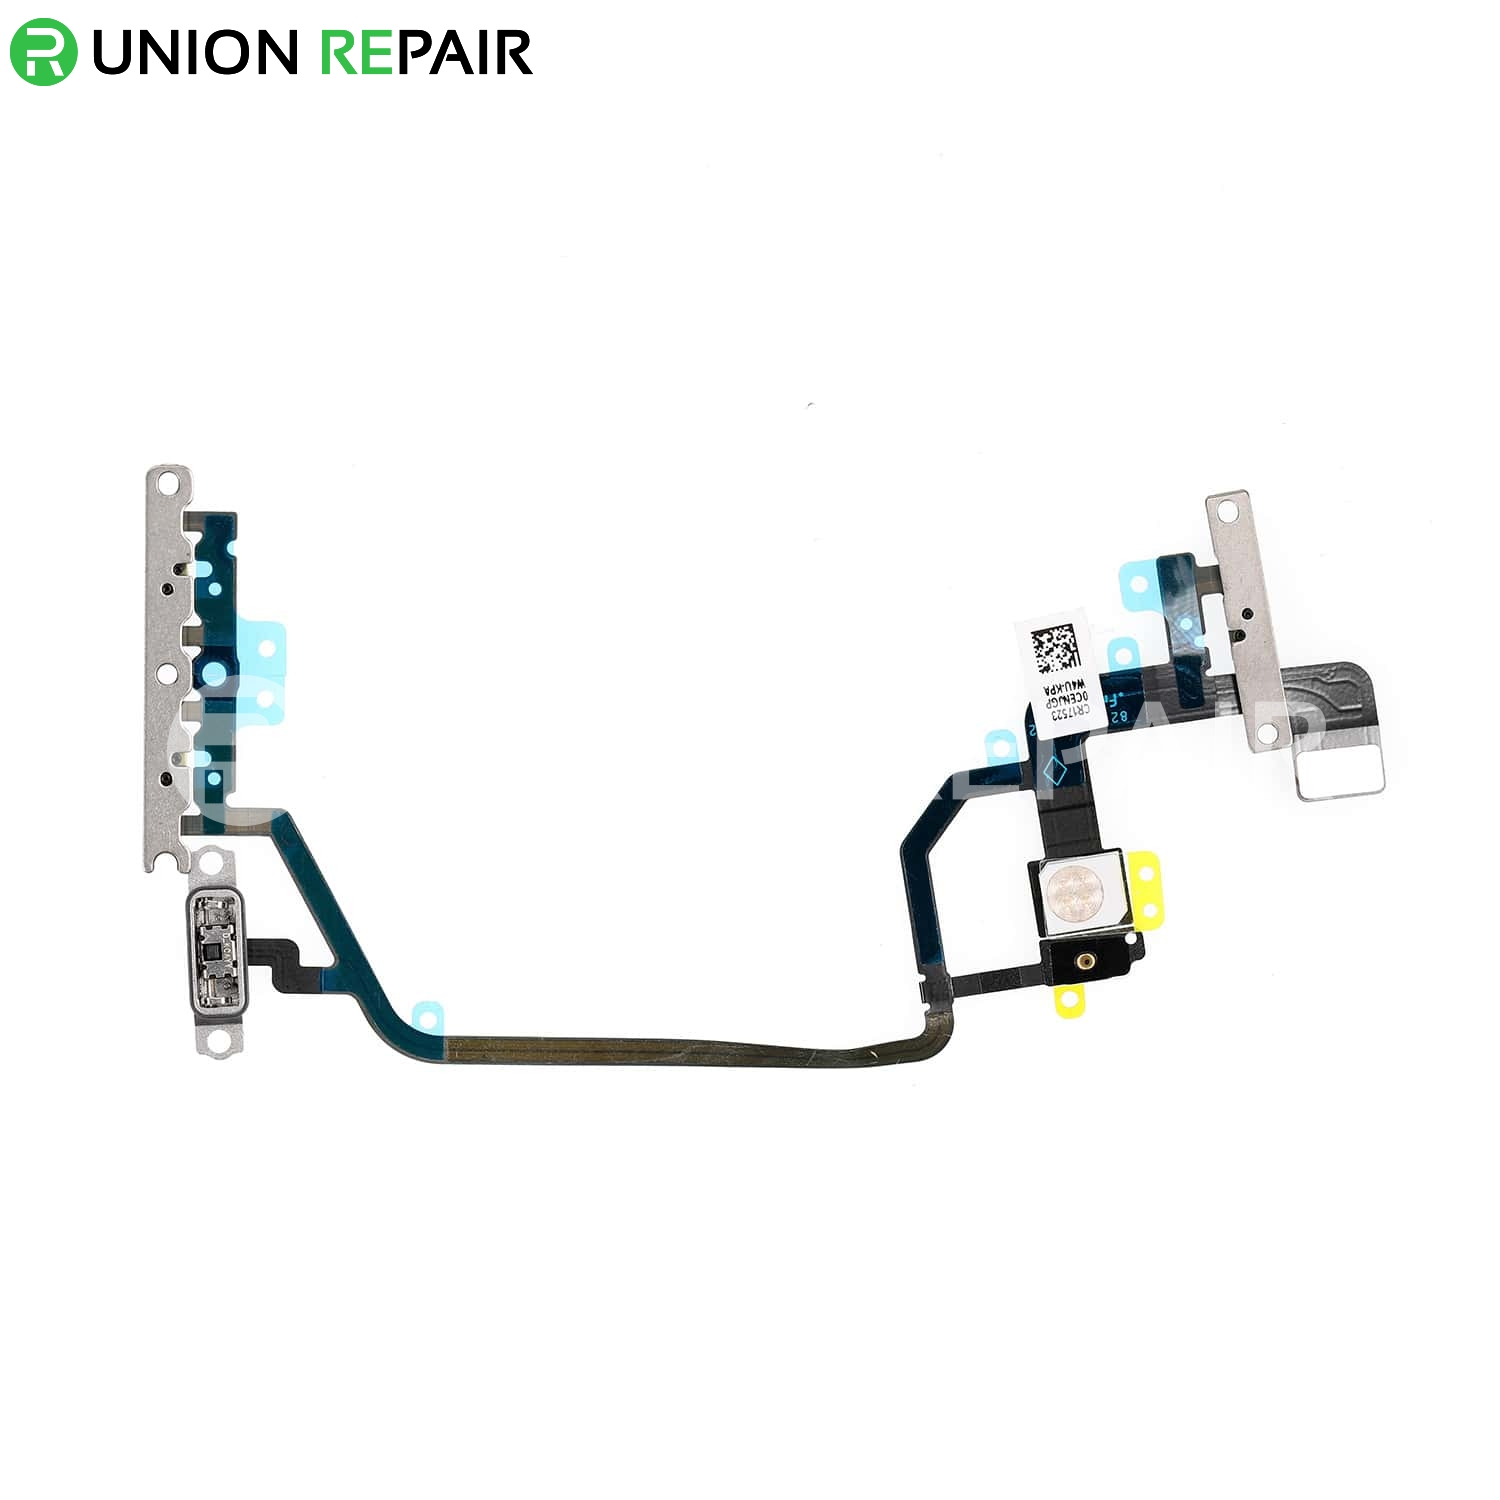 Replacement for iPhone XR Power/Volume Button Flex Cable with Metal Bracket Assembly